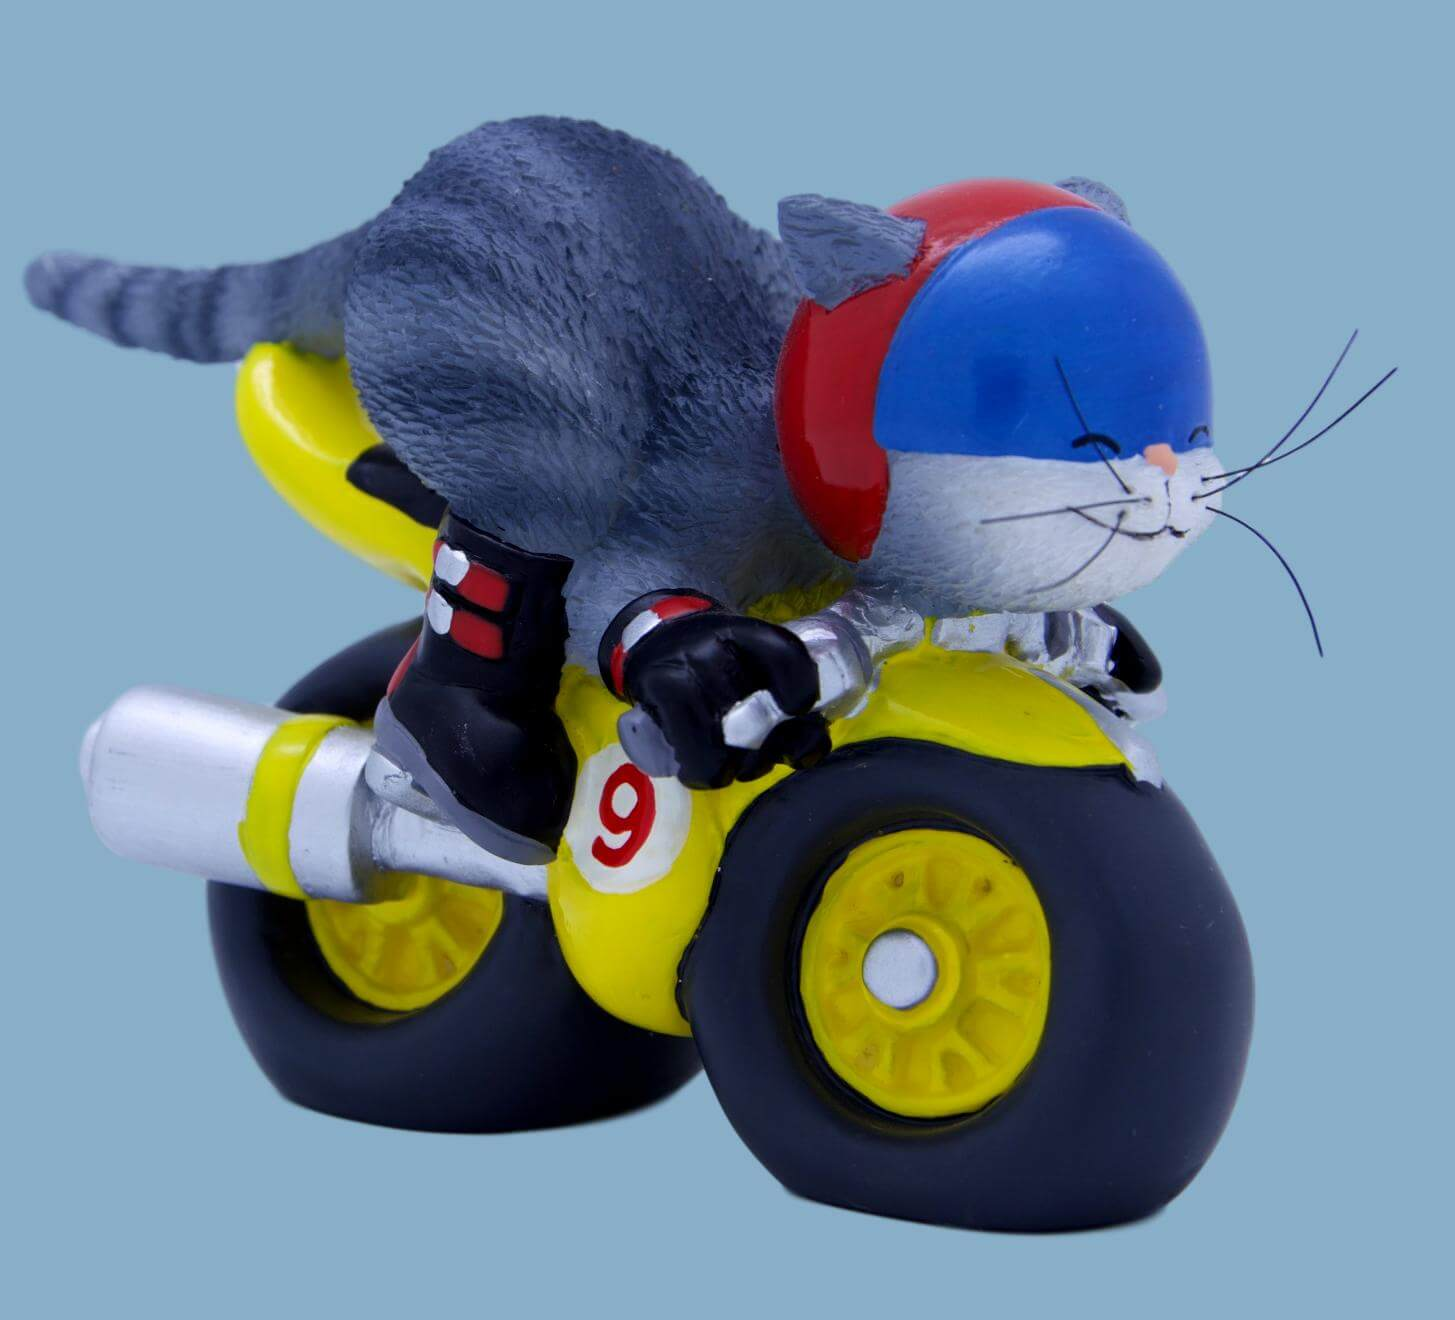 9 Lives Route 99 Grey Cat Figurine